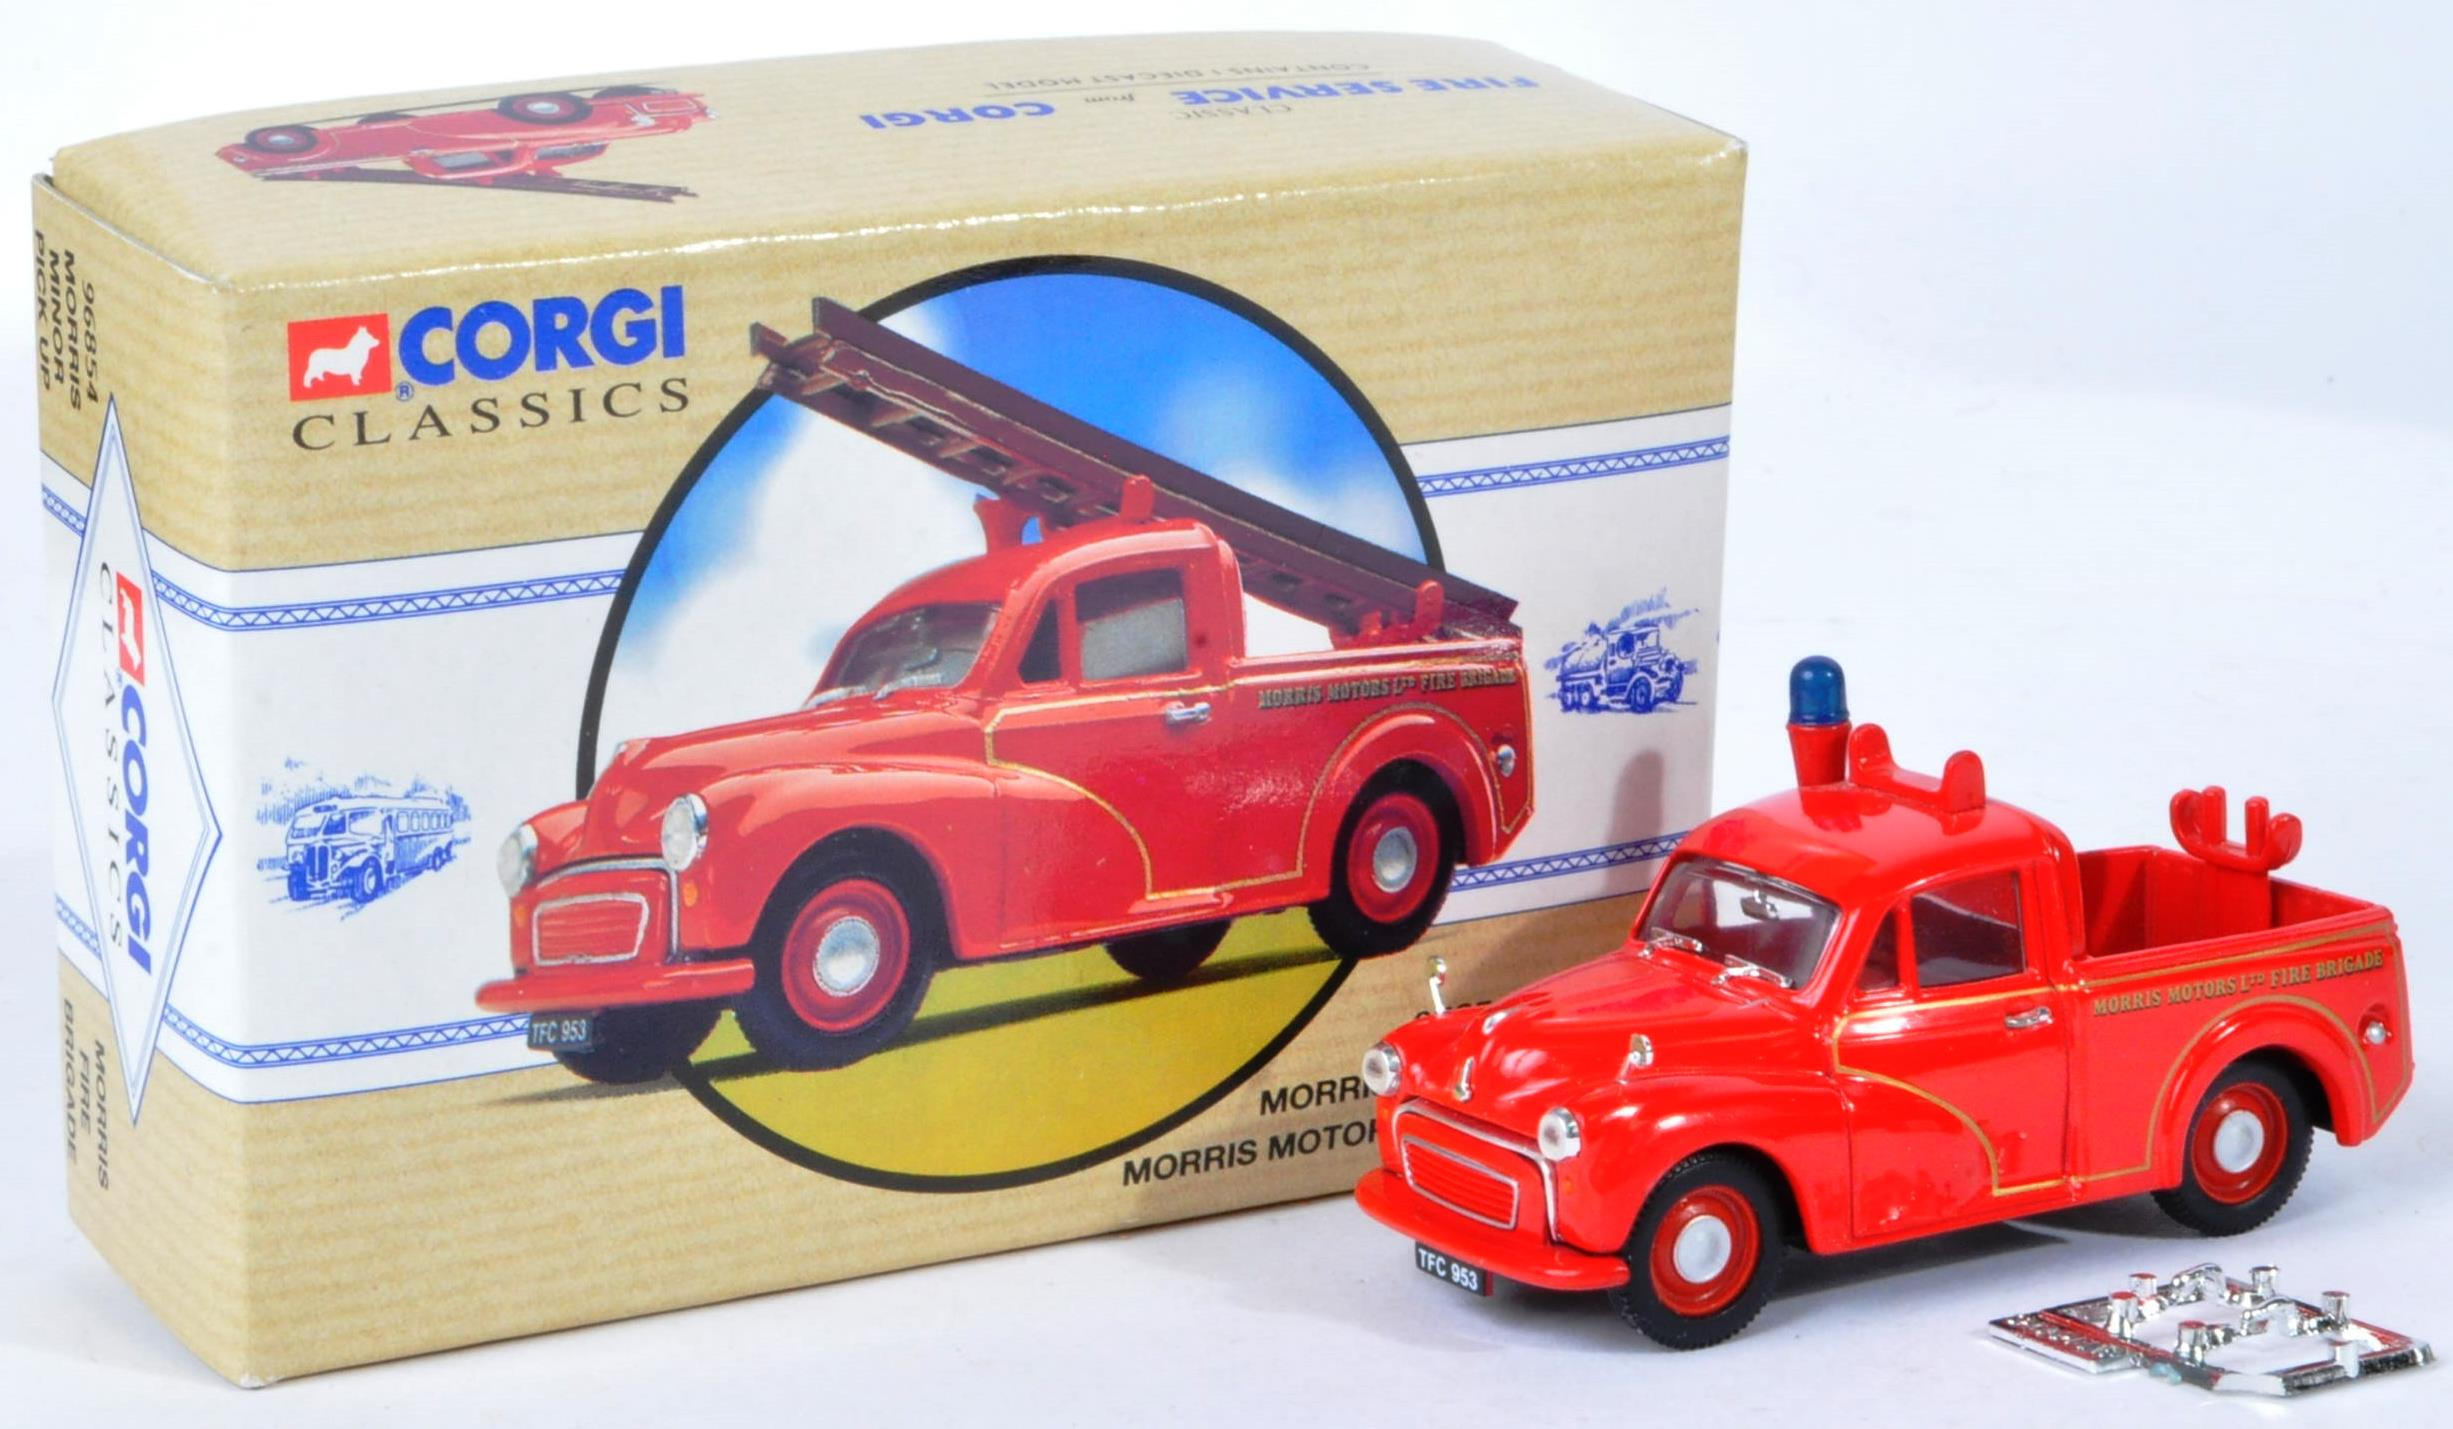 COLLECTION OF ASSORTED CORGI DIECAST MODEL CARS - Image 2 of 5